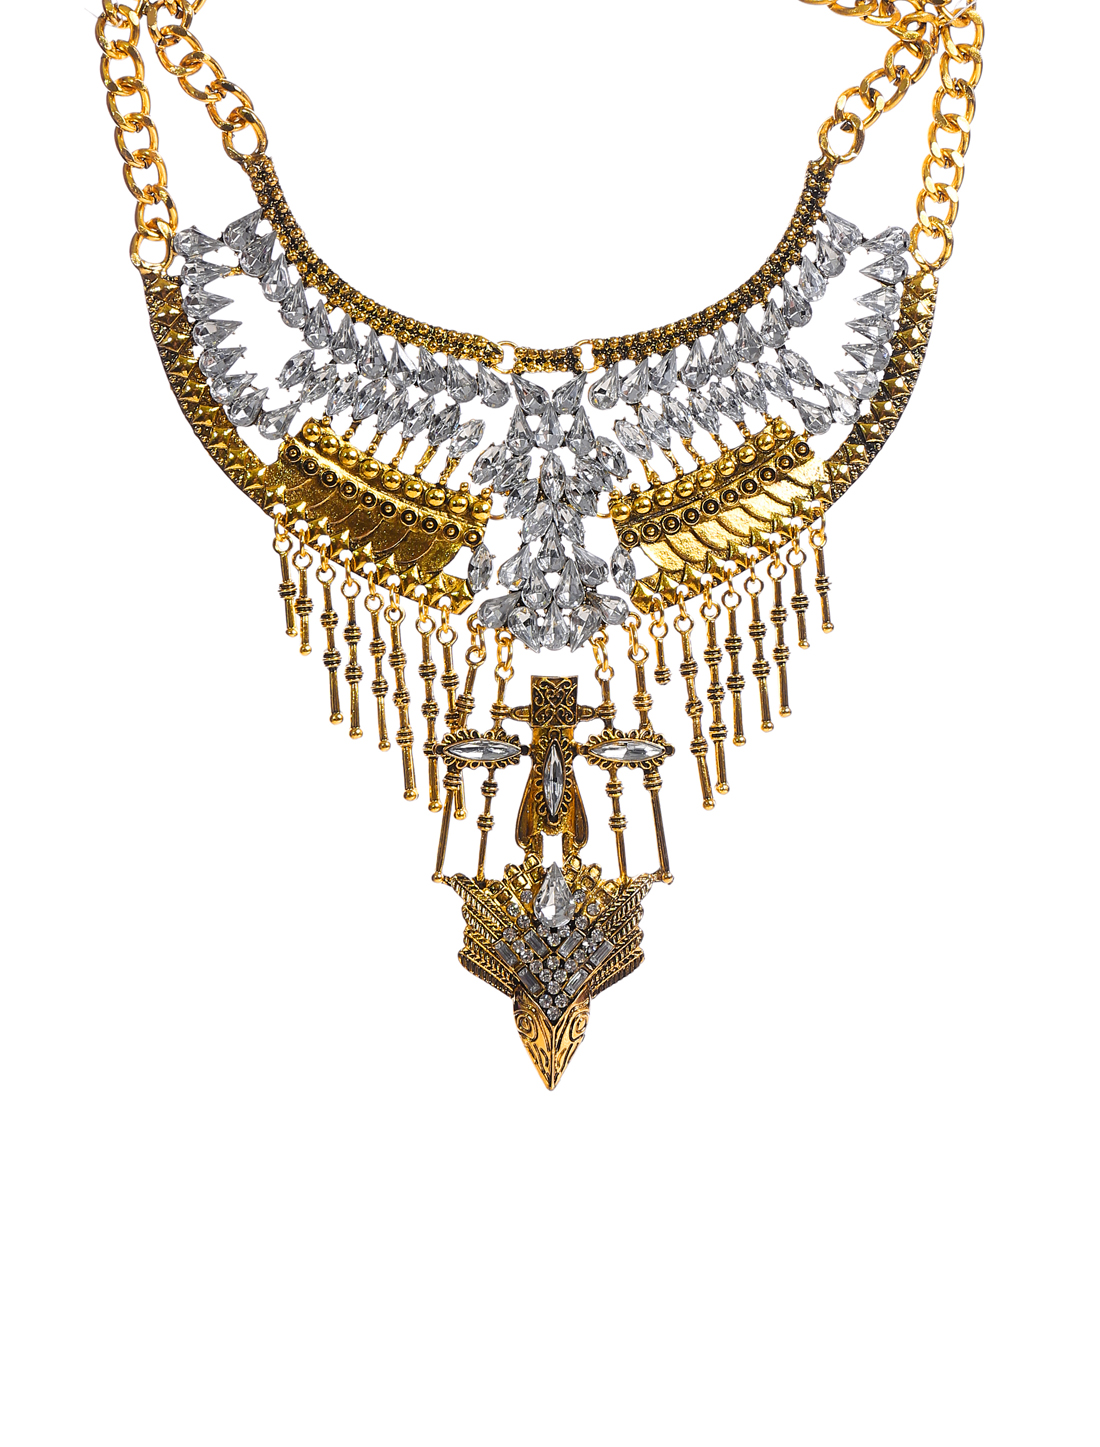 Vintage Ethnic Gold Chain Punk Statement Pendant Bib Necklace